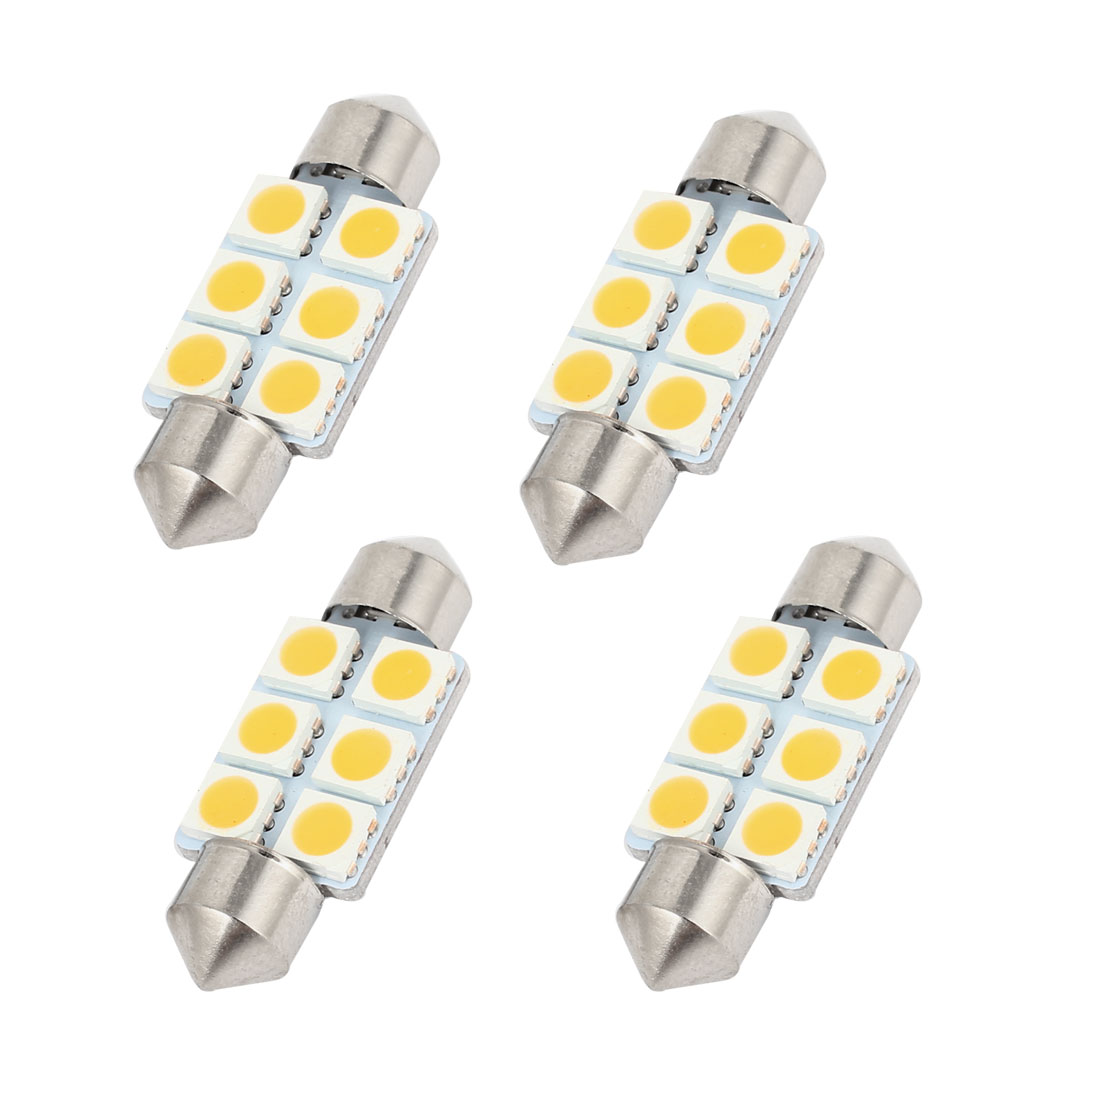 "4 Pcs 36mm 1.50"" 6-SMD 5050 Warm White LED Festoon Dome Light DE3423 Internal"